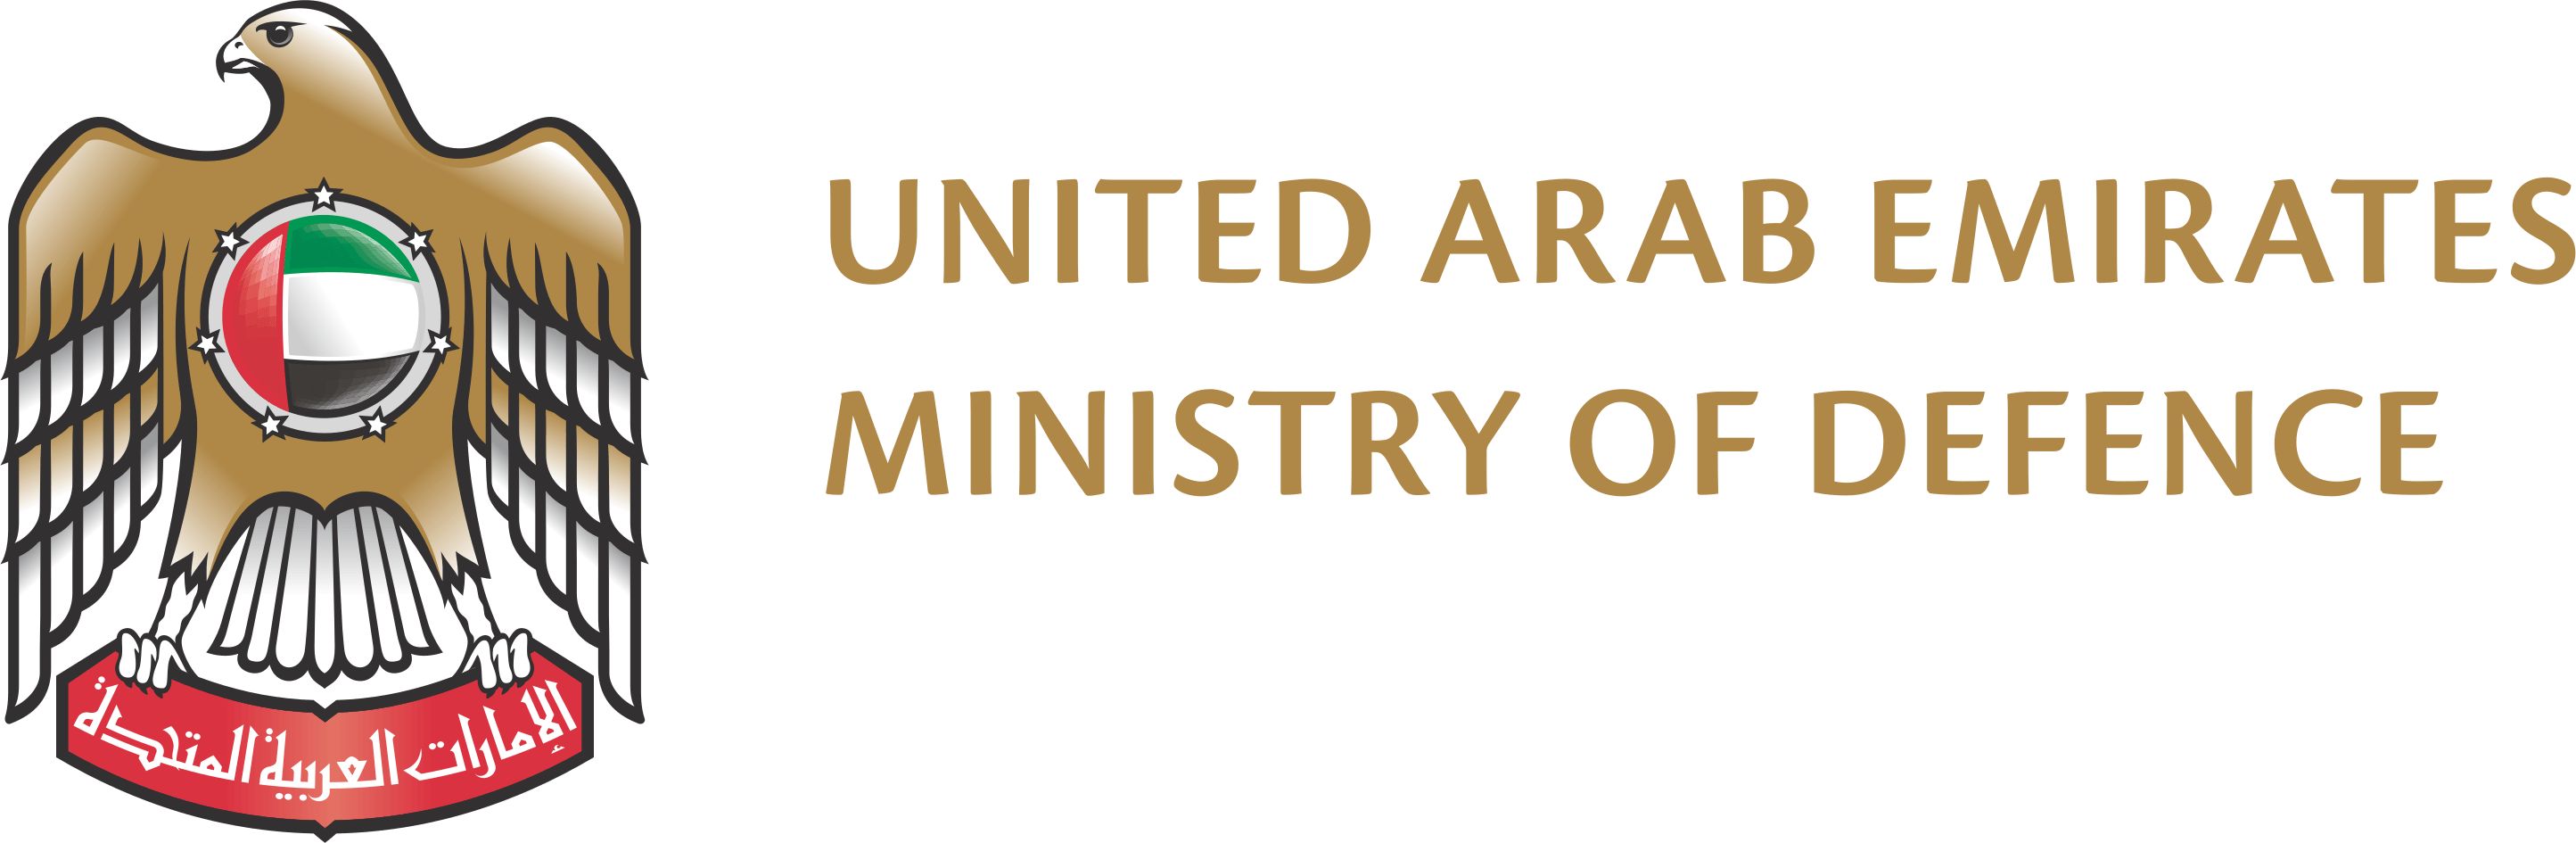 Ministry of Defence UAE - Official Website